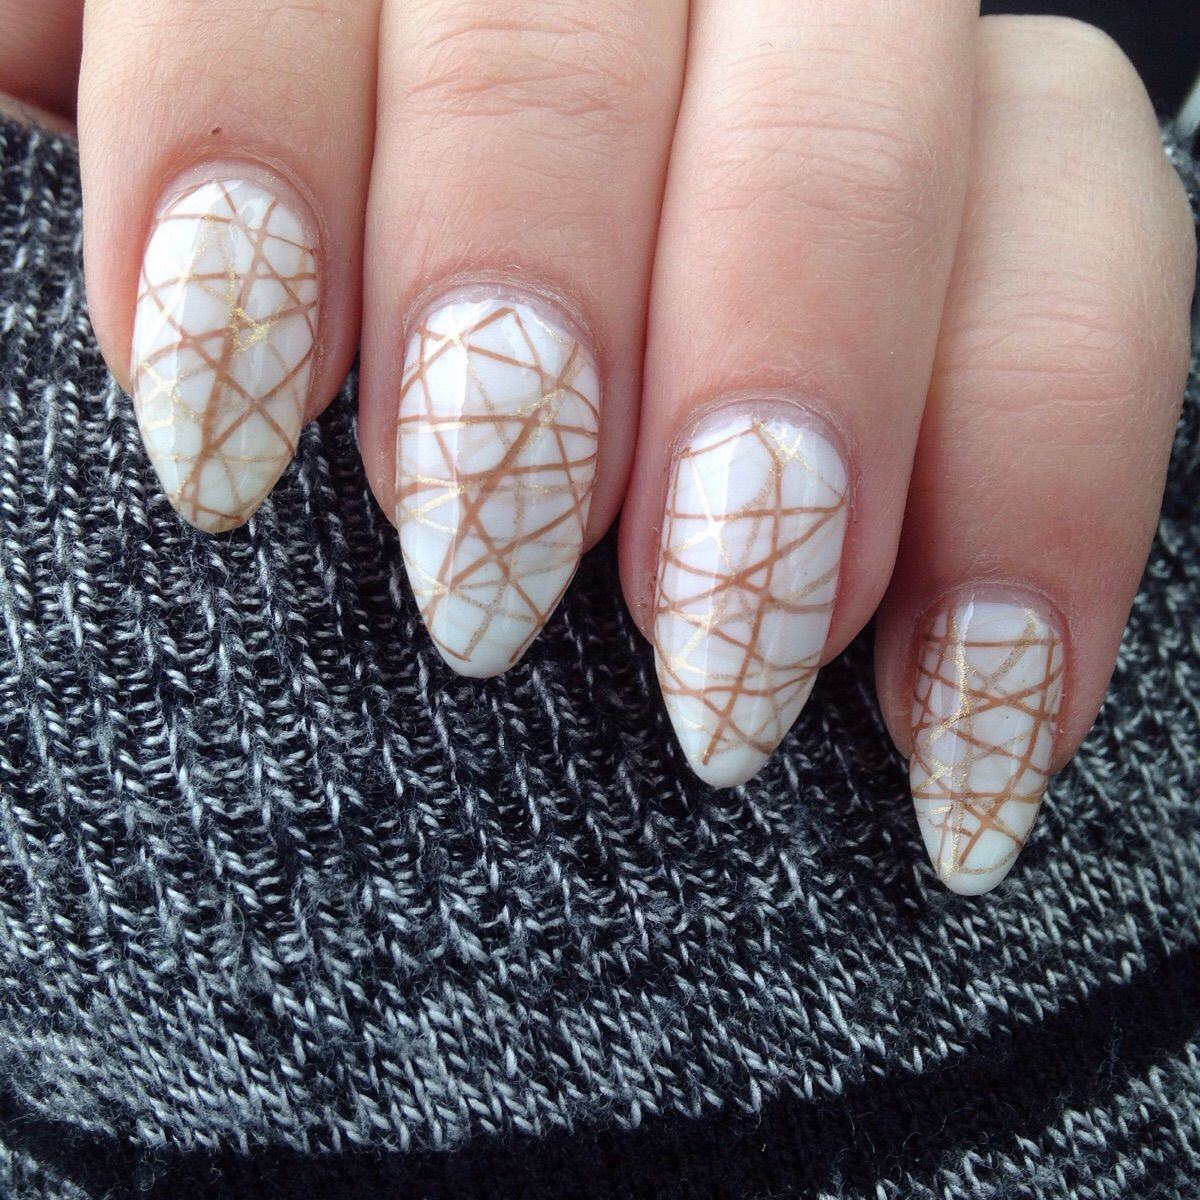 Somewhat subtle triple stamping (beige, gold, brown)